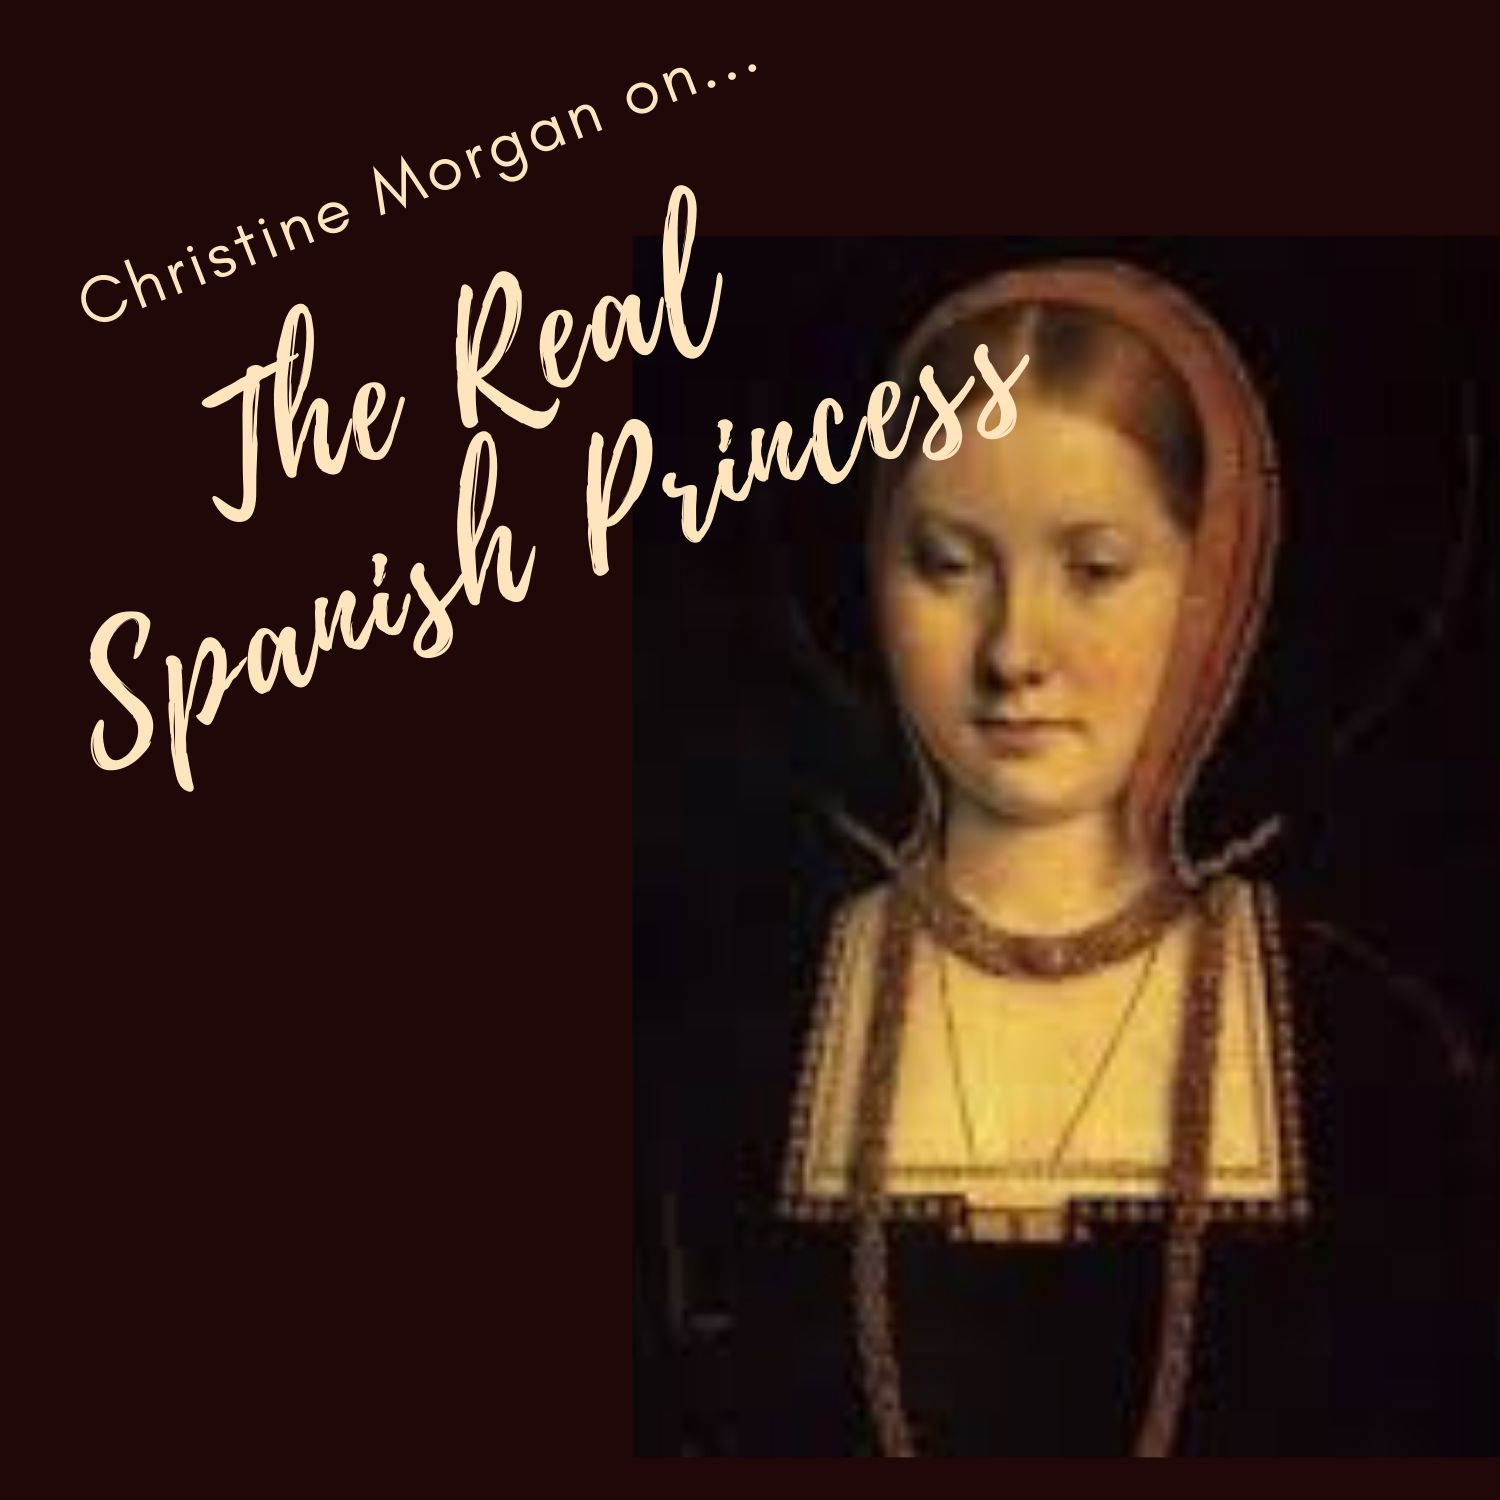 The Real Spanish Princess with Christine Morgan